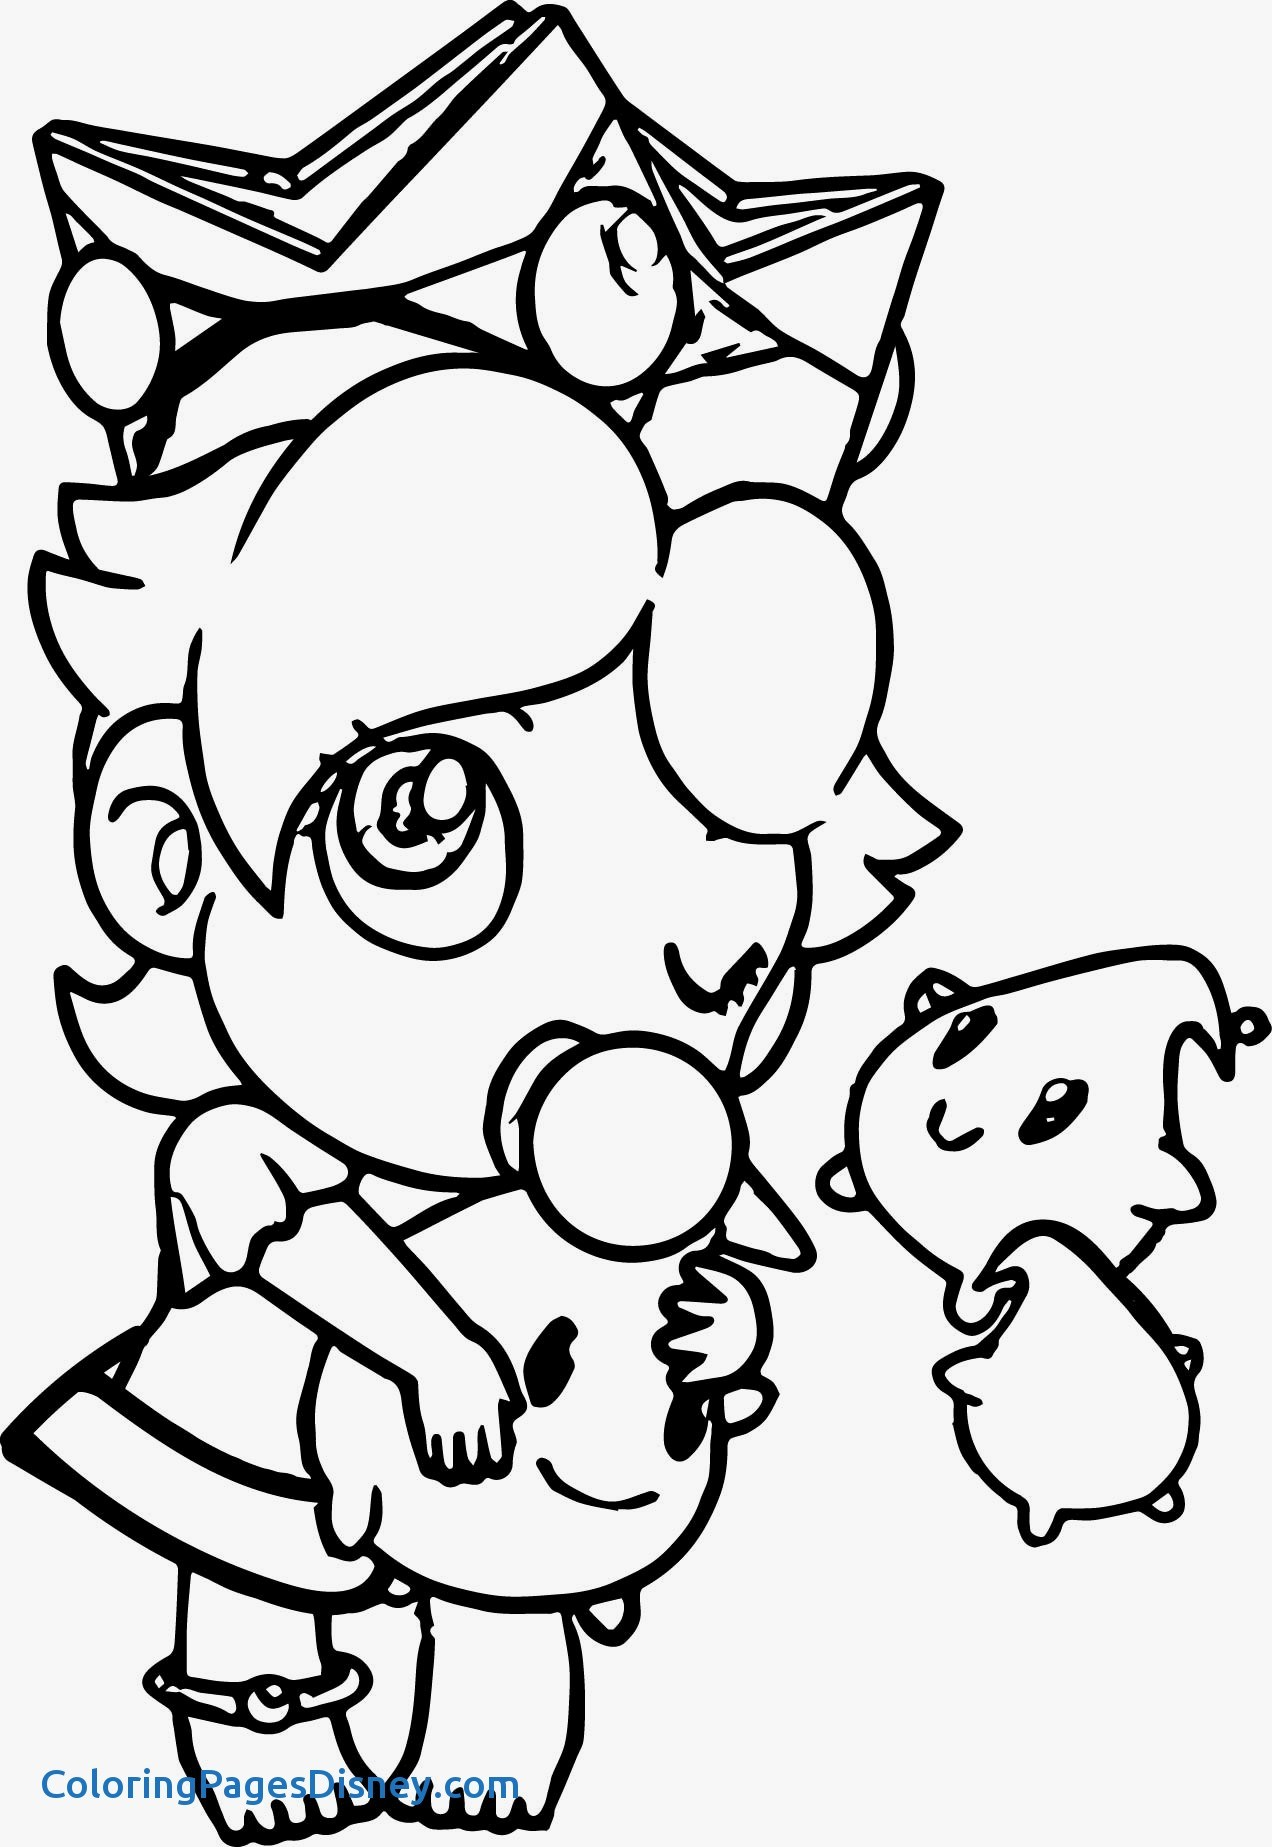 1272x1847 Lucky Star Coloring Pages Elegant New Lucky Star Coloring Pages